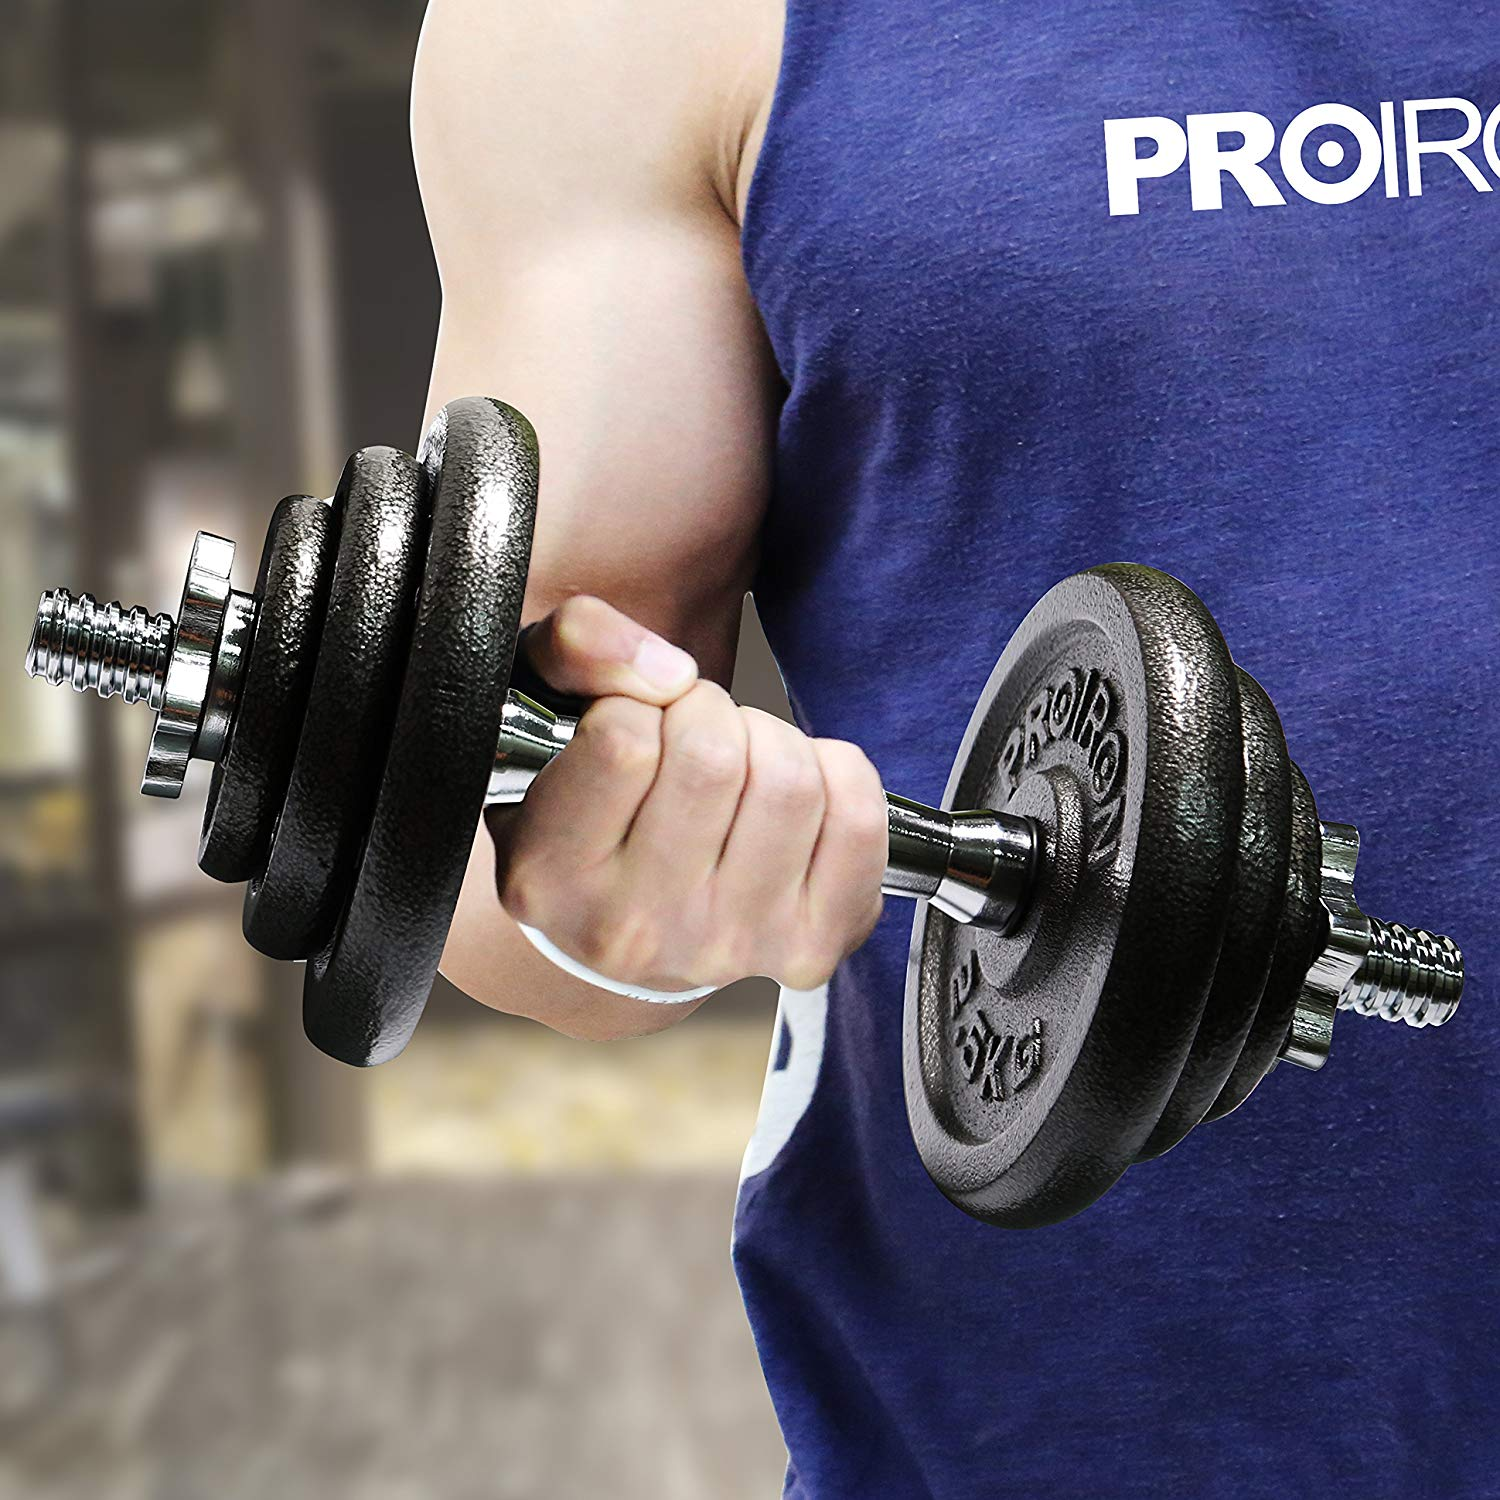 PROIRON 20kg Cast Iron Adjustable Dumbbell Set